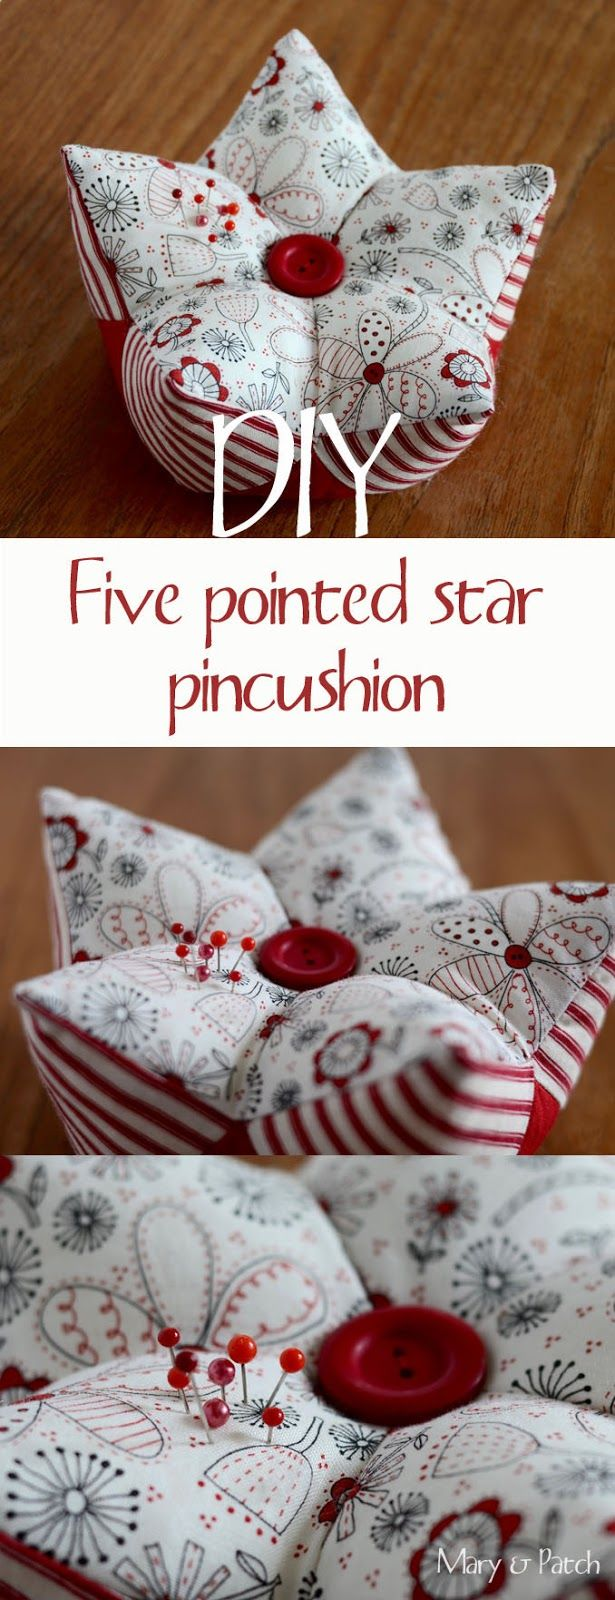 Maryandpatch, 3D patchwork, five pointed star pincushion | Free ...